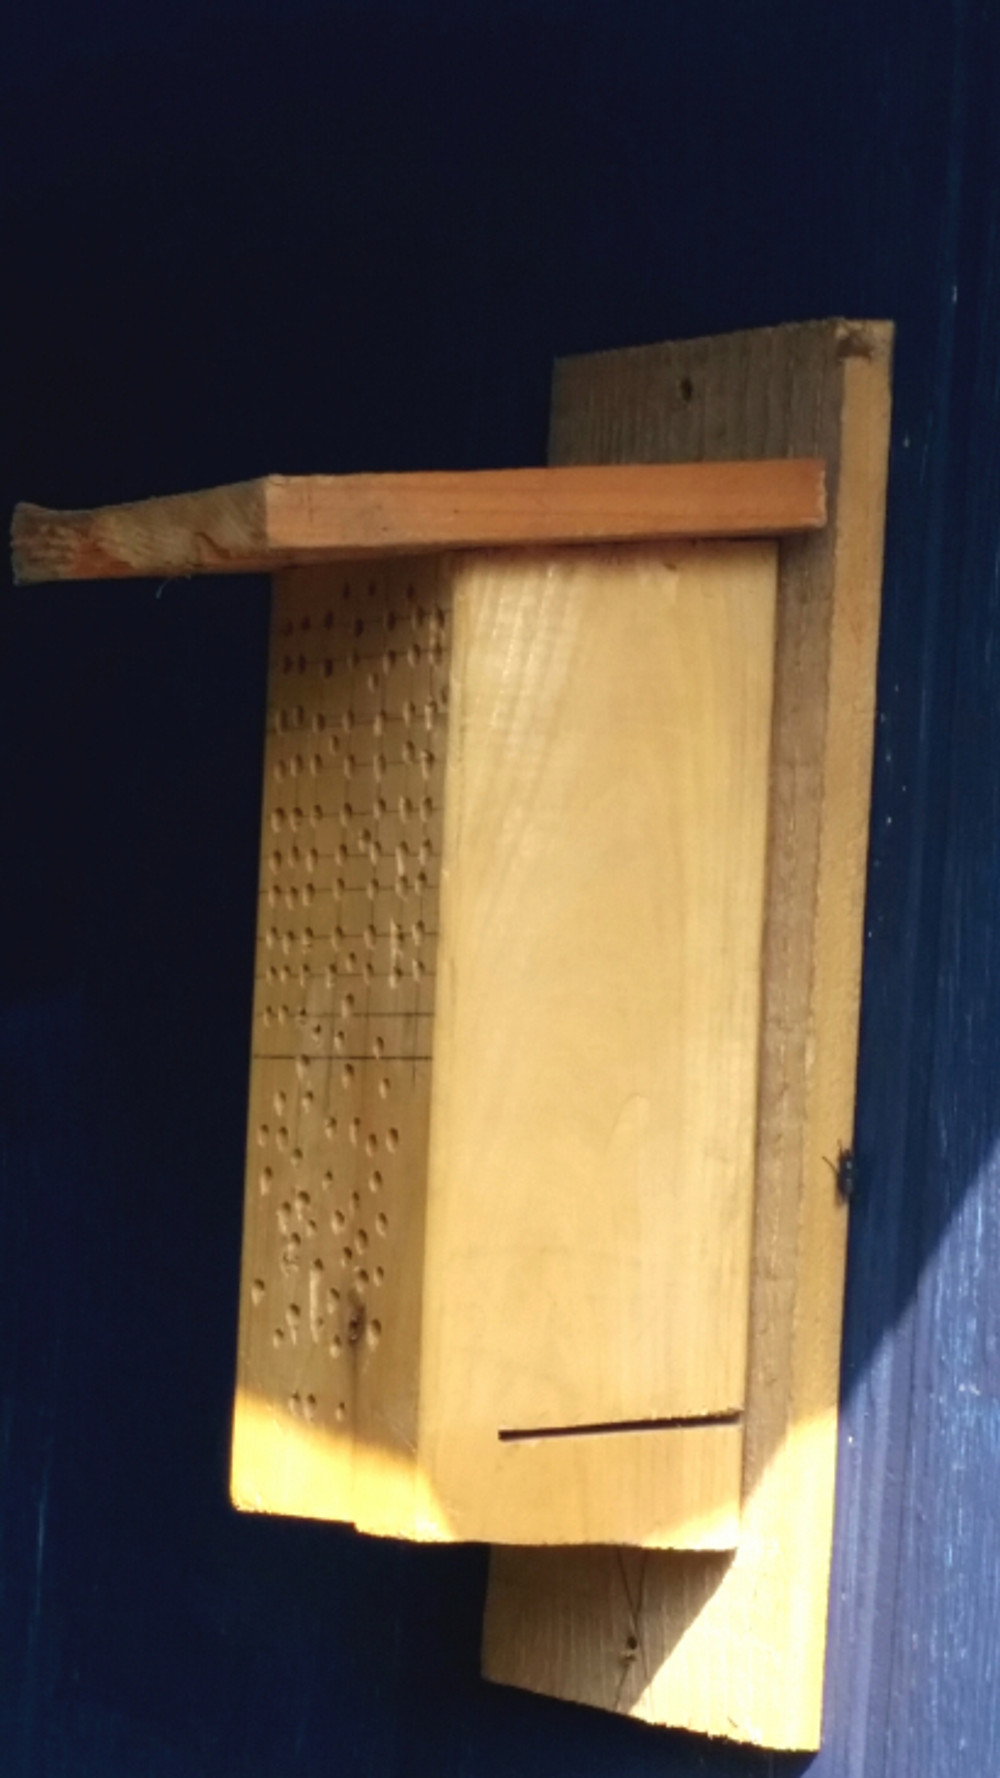 Saturday temperatures broke into the 70s and with that, my hubby was inspired to finish up his latest project of creating a mason bee house out of scrap wood and putting it up on the back of our garage to attract more pollinators.